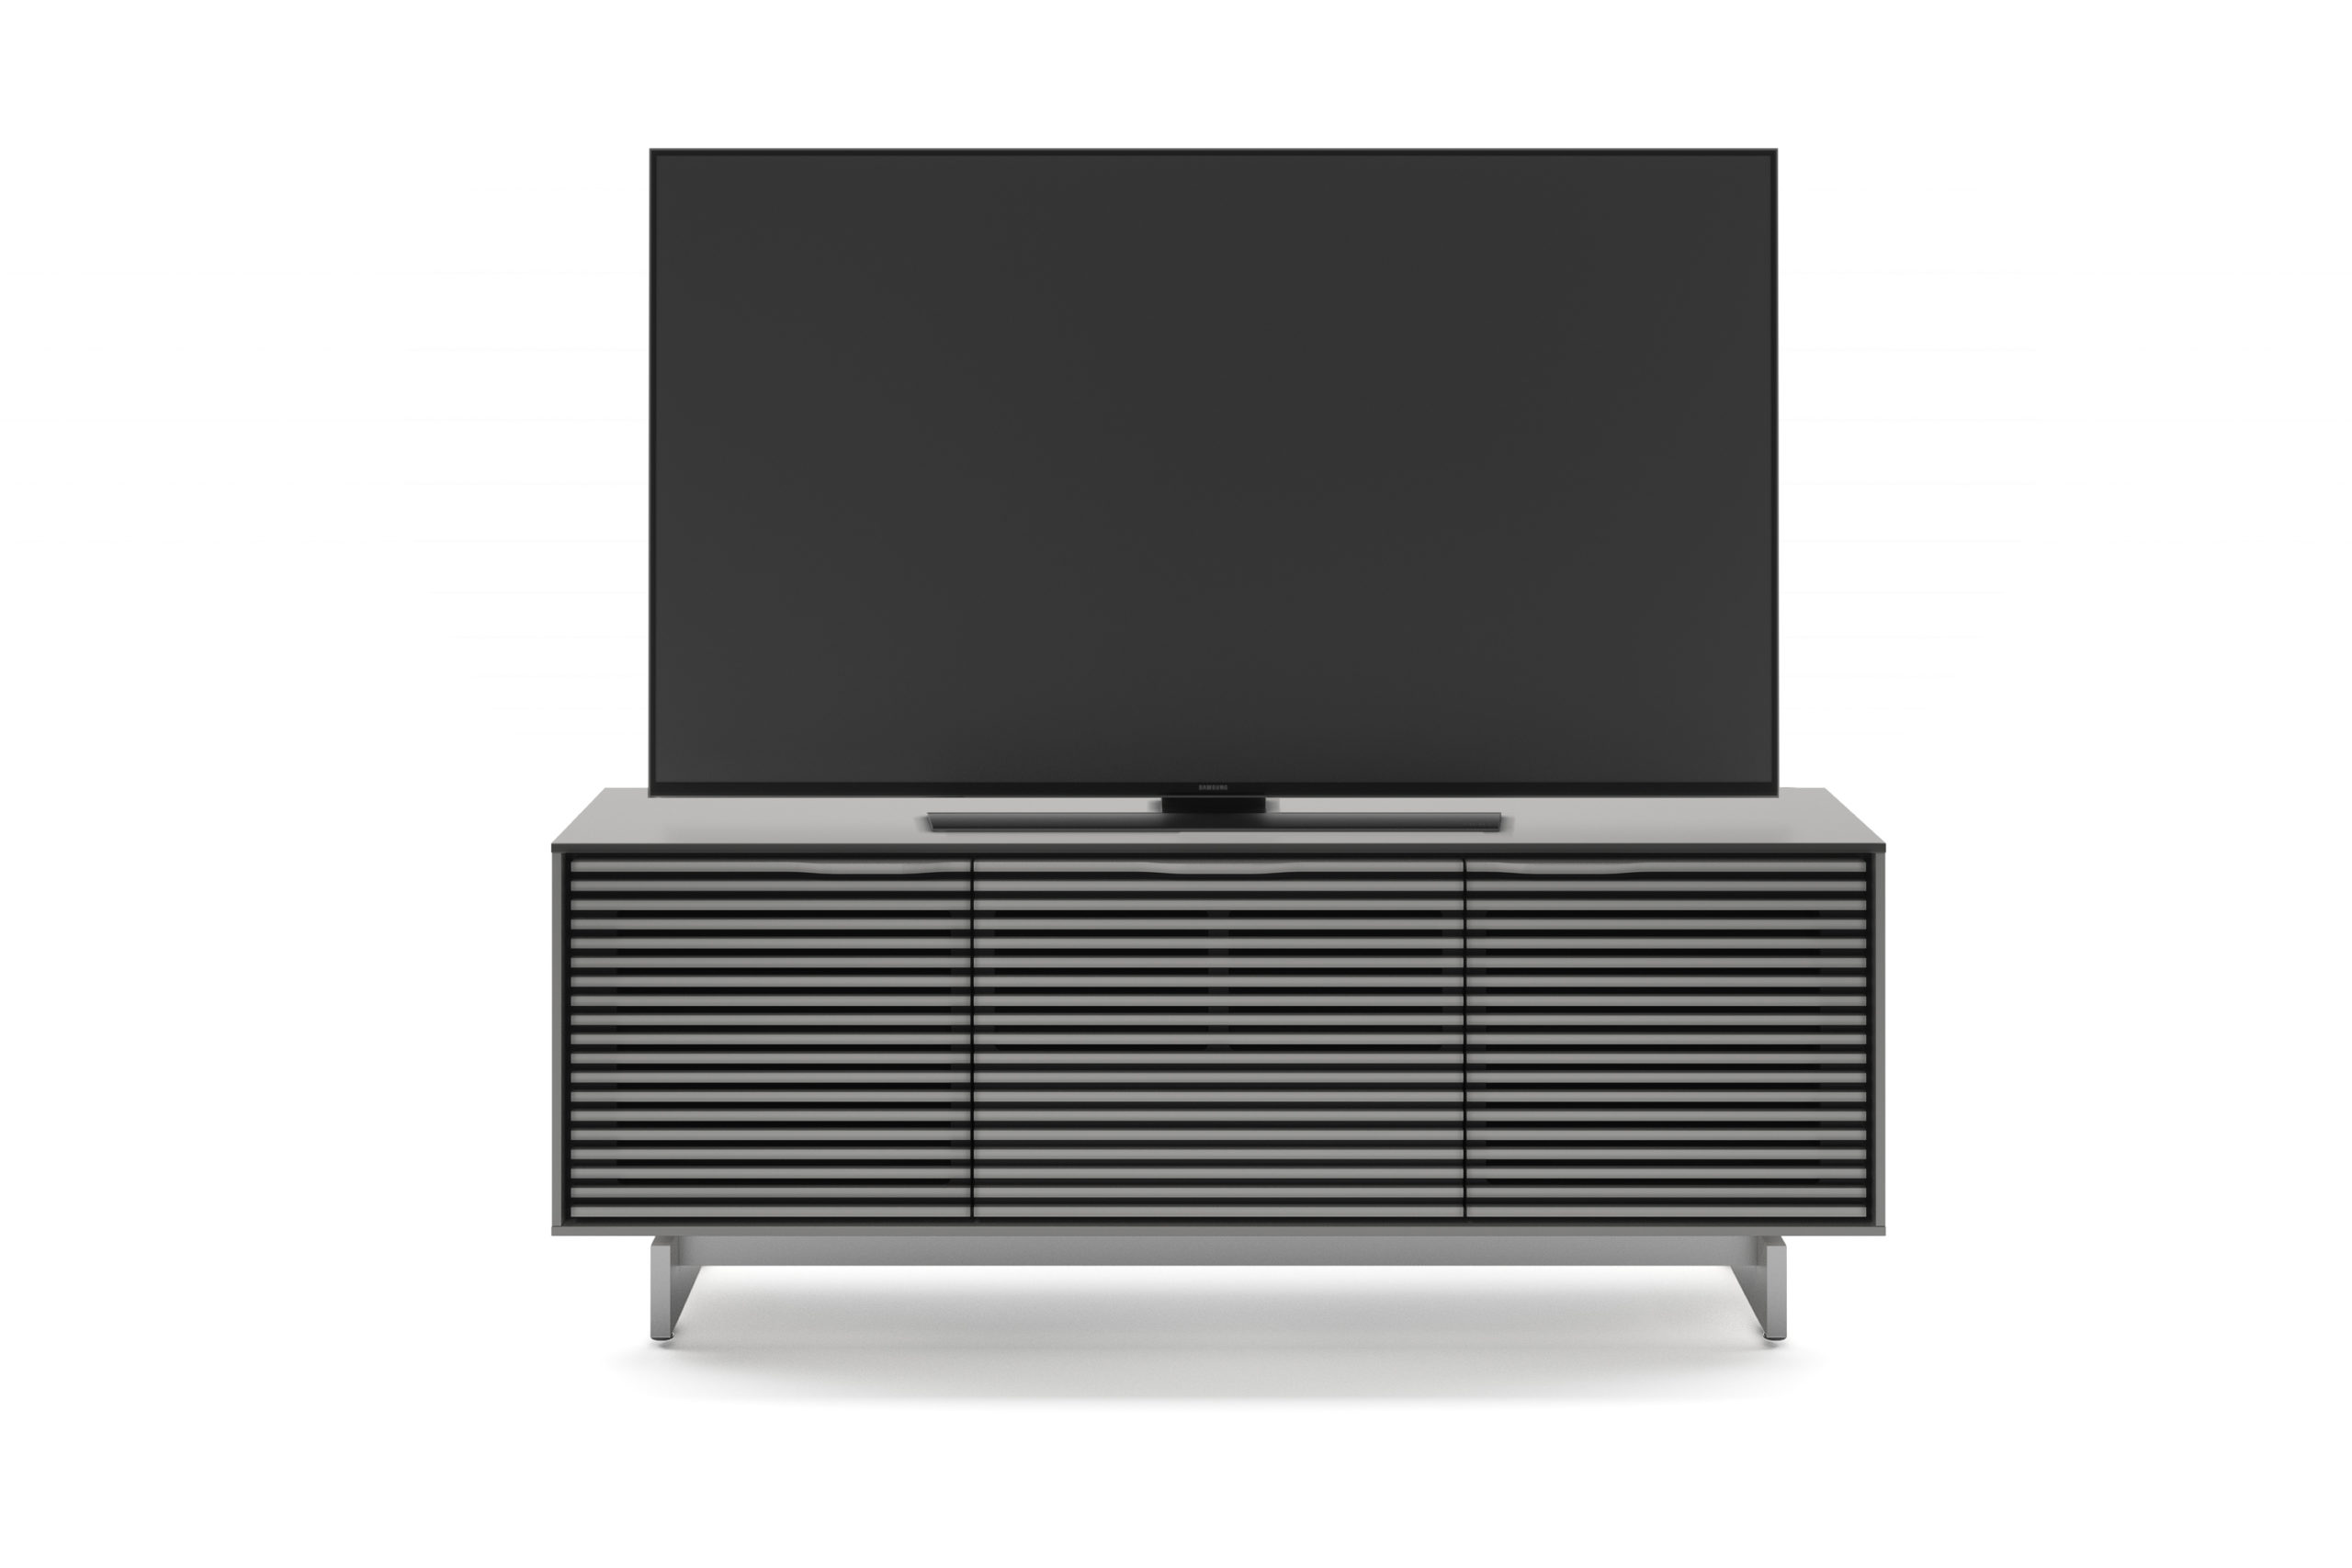 Align 7477 Modern TV Stand, Media Cabinet & Credenza | BDI Furniture